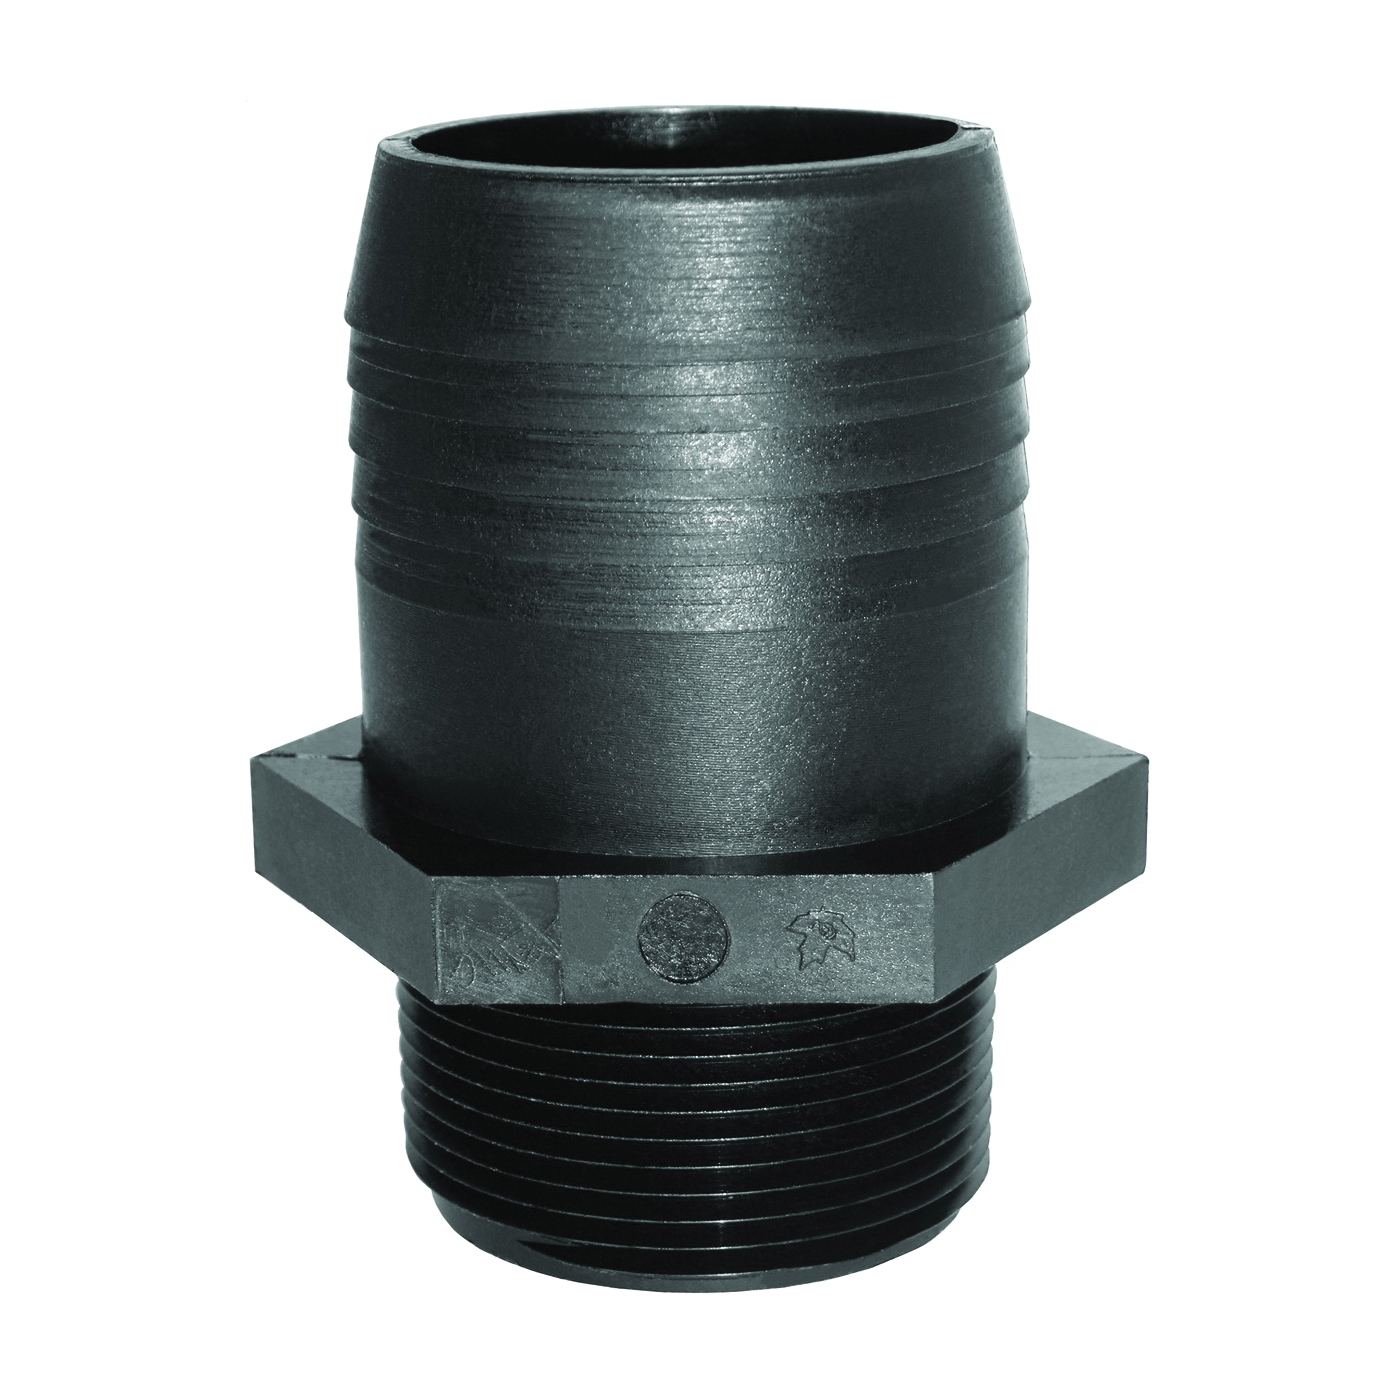 Picture of GREEN LEAF A200P Adapter Fitting, 2 in, MPT x Hose Barb, Polypropylene